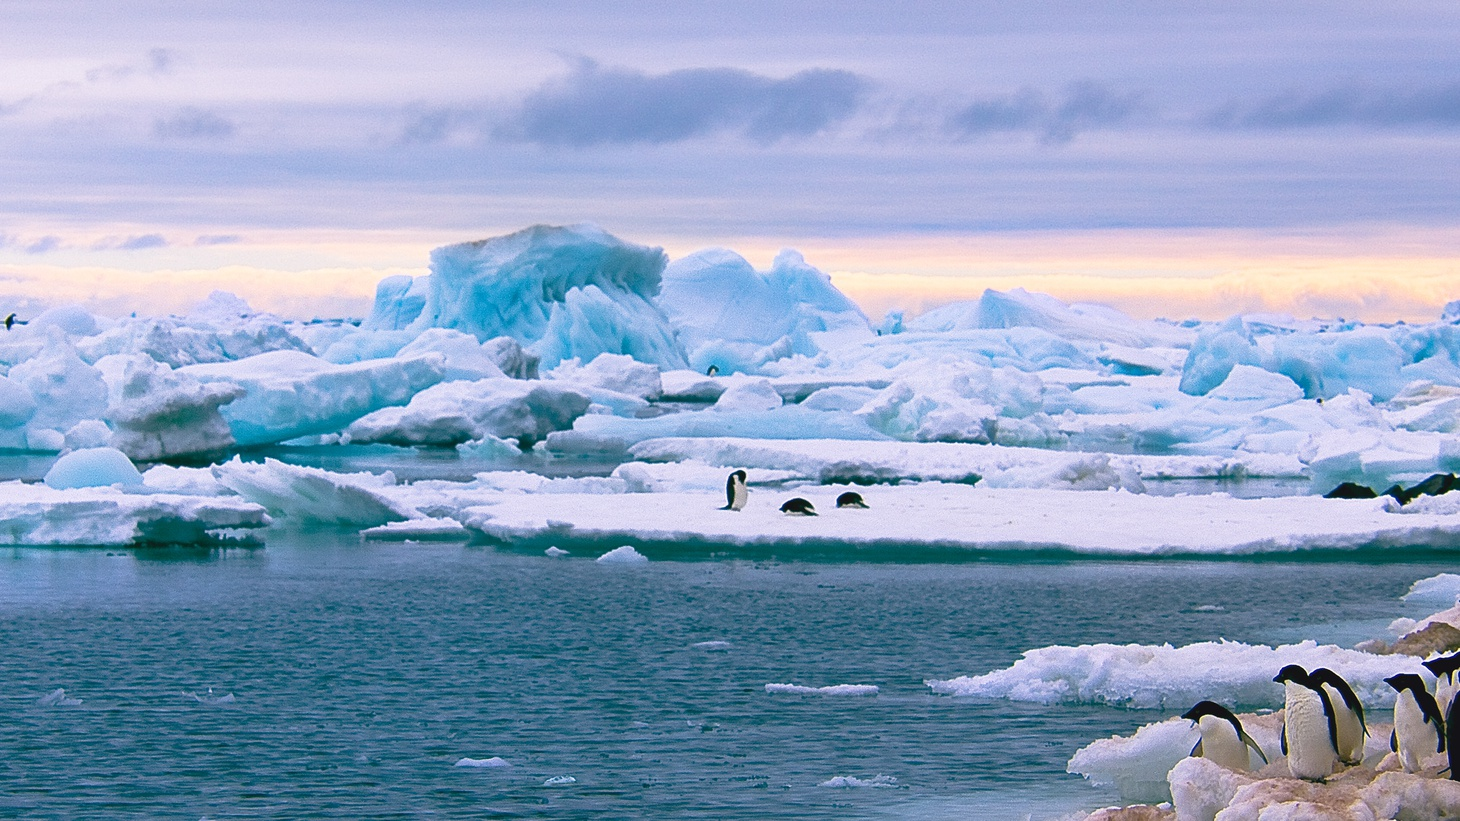 National Geographic announced there is a fifth ocean around Antarctica. It's called the Southern Ocean.